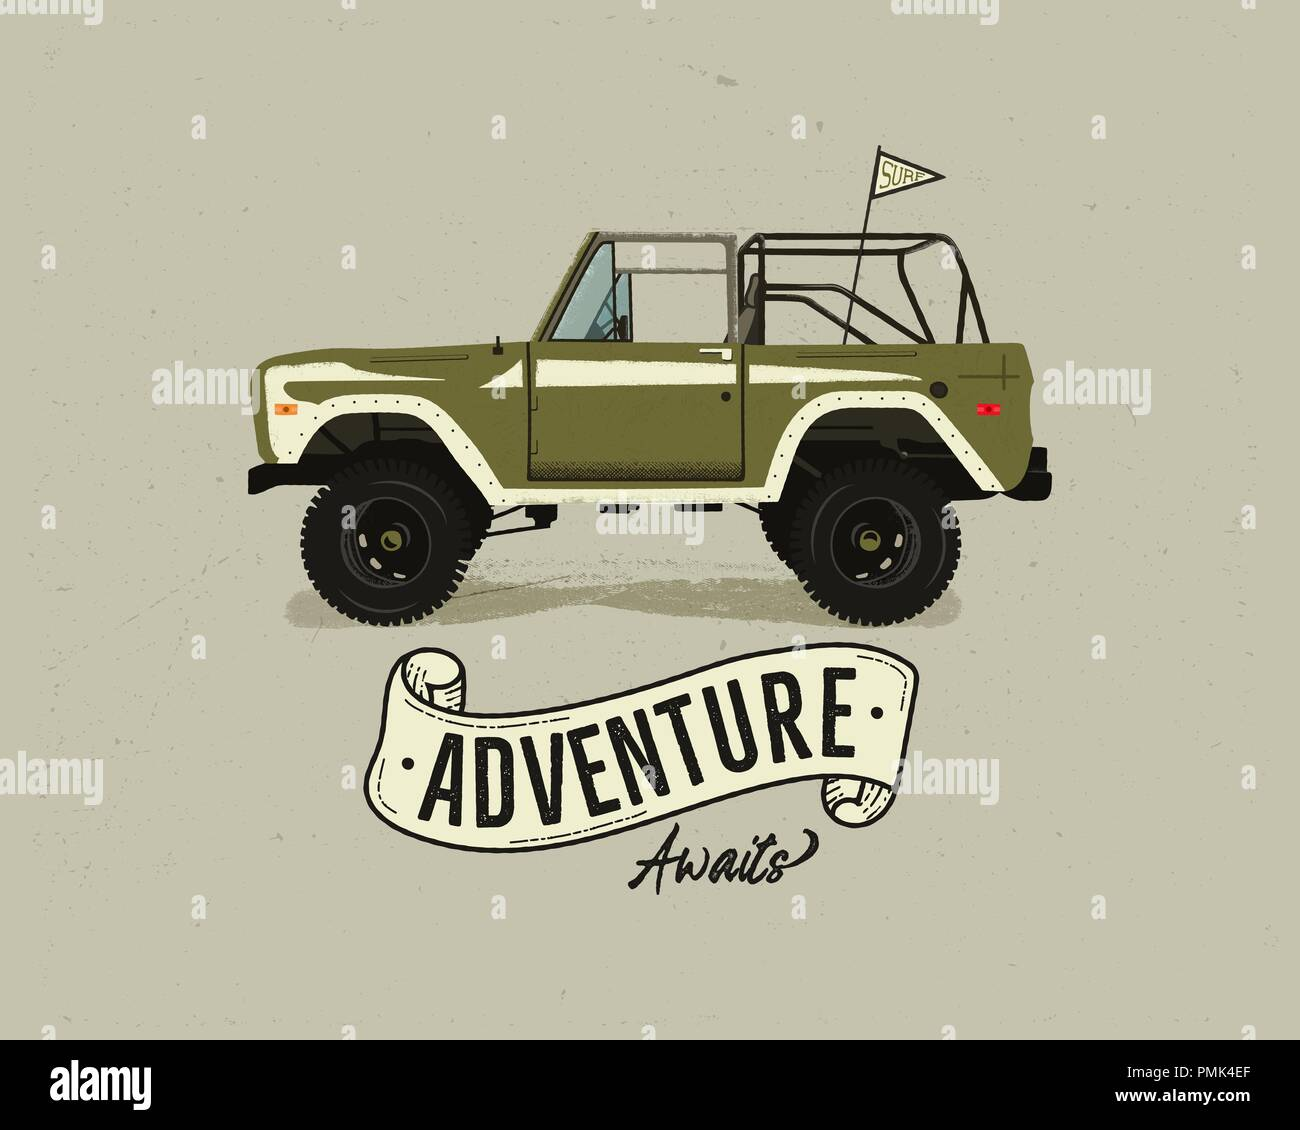 Vintage hand drawn surfing car. Retro transportation with surf pennant. Old style surfers automobile. Perfect for T-Shirt, travel mugs and other outdoor adventure apparel prints. Stock vector Stock Vector